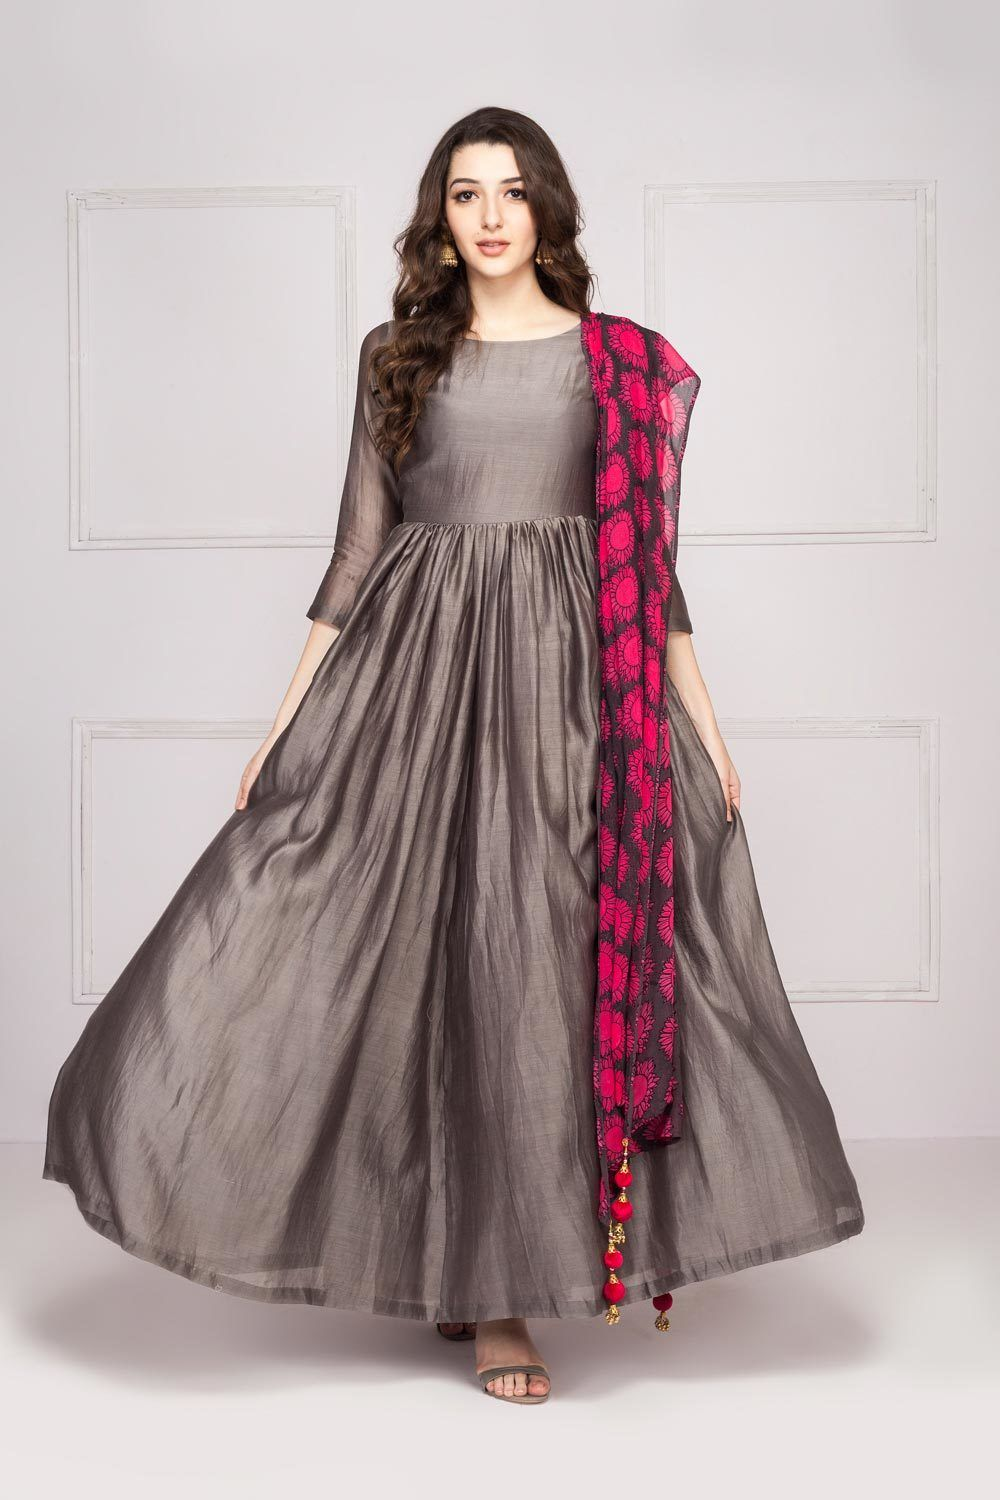 Details about India Gherdaar Plus Size Dress Bridal Party Anarkali ...